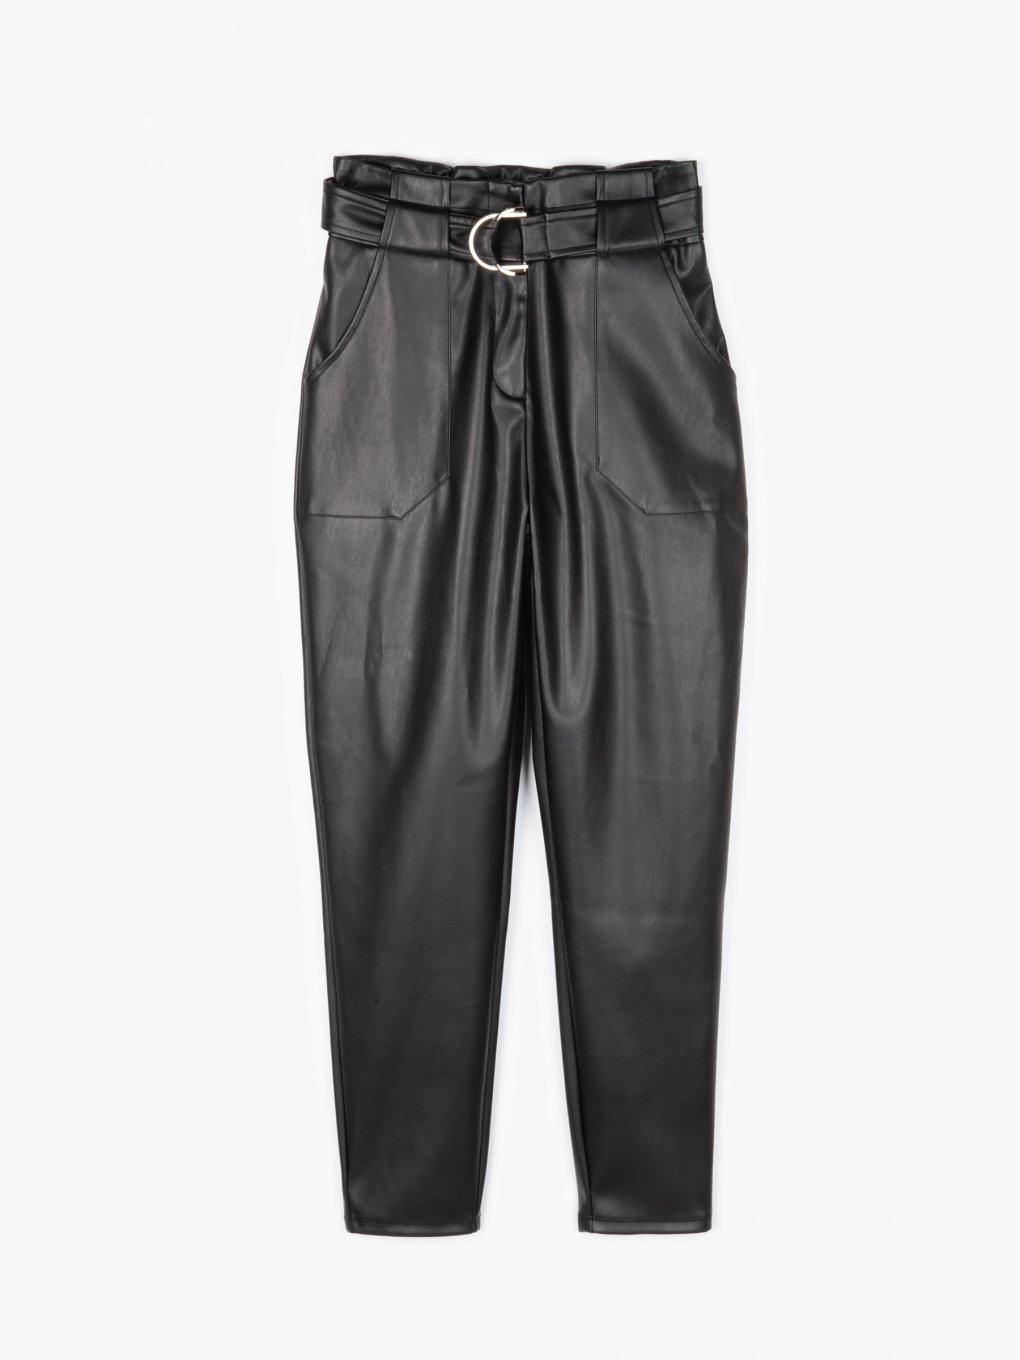 Vegan leather trousers with belt